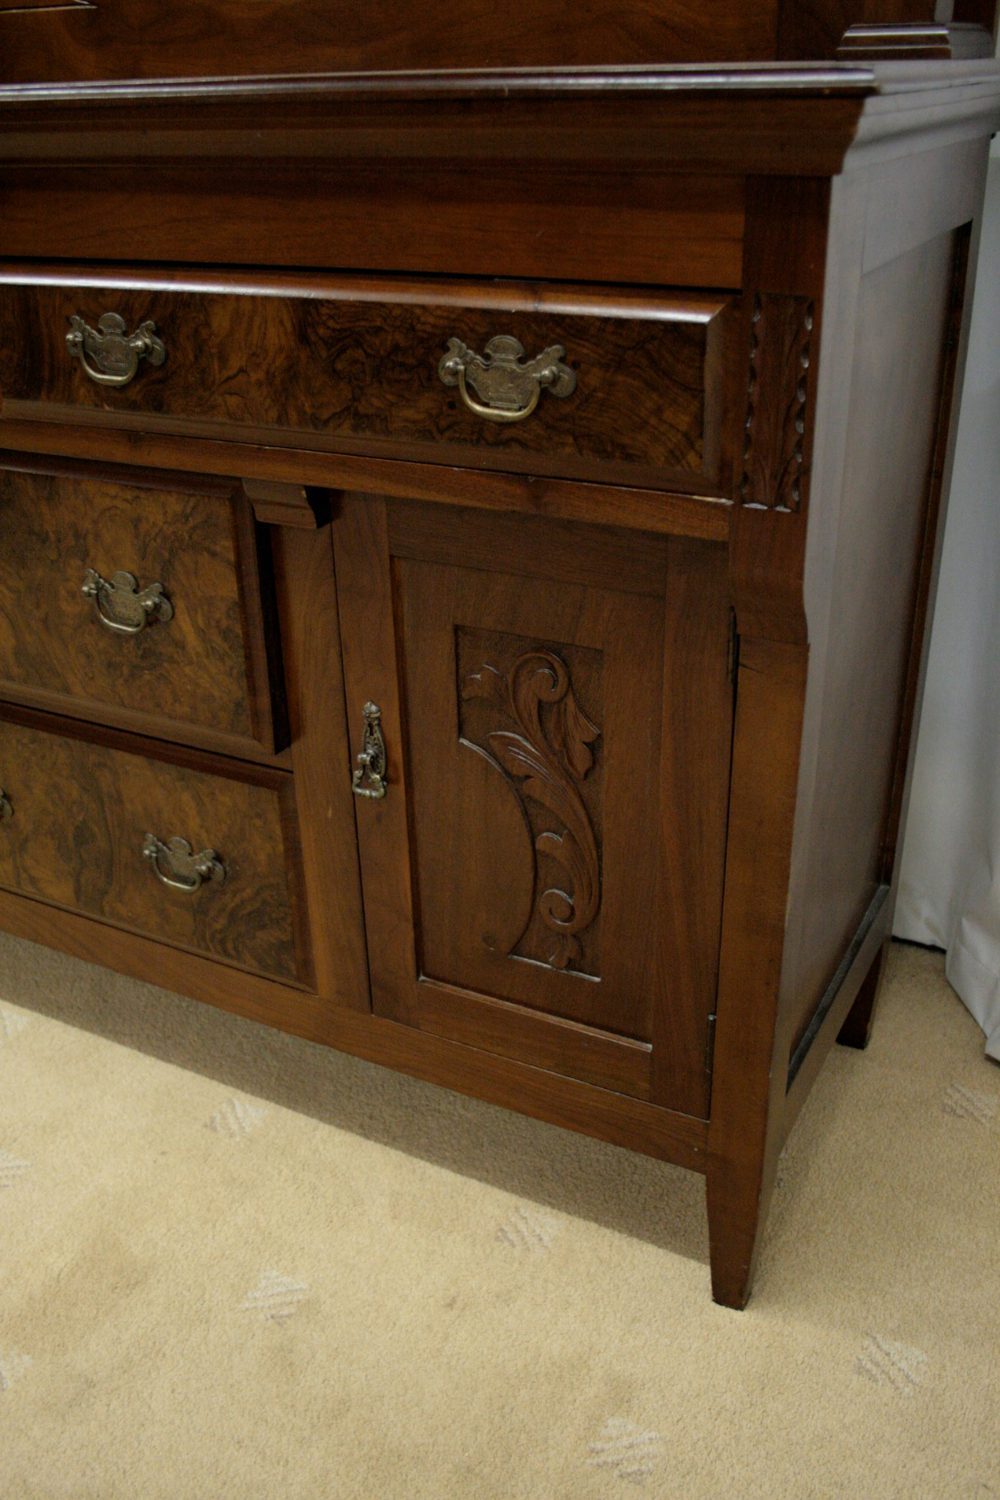 Edwardian Gany Mirror Backed Sideboard Antique Sideboards Cupboard Drawers